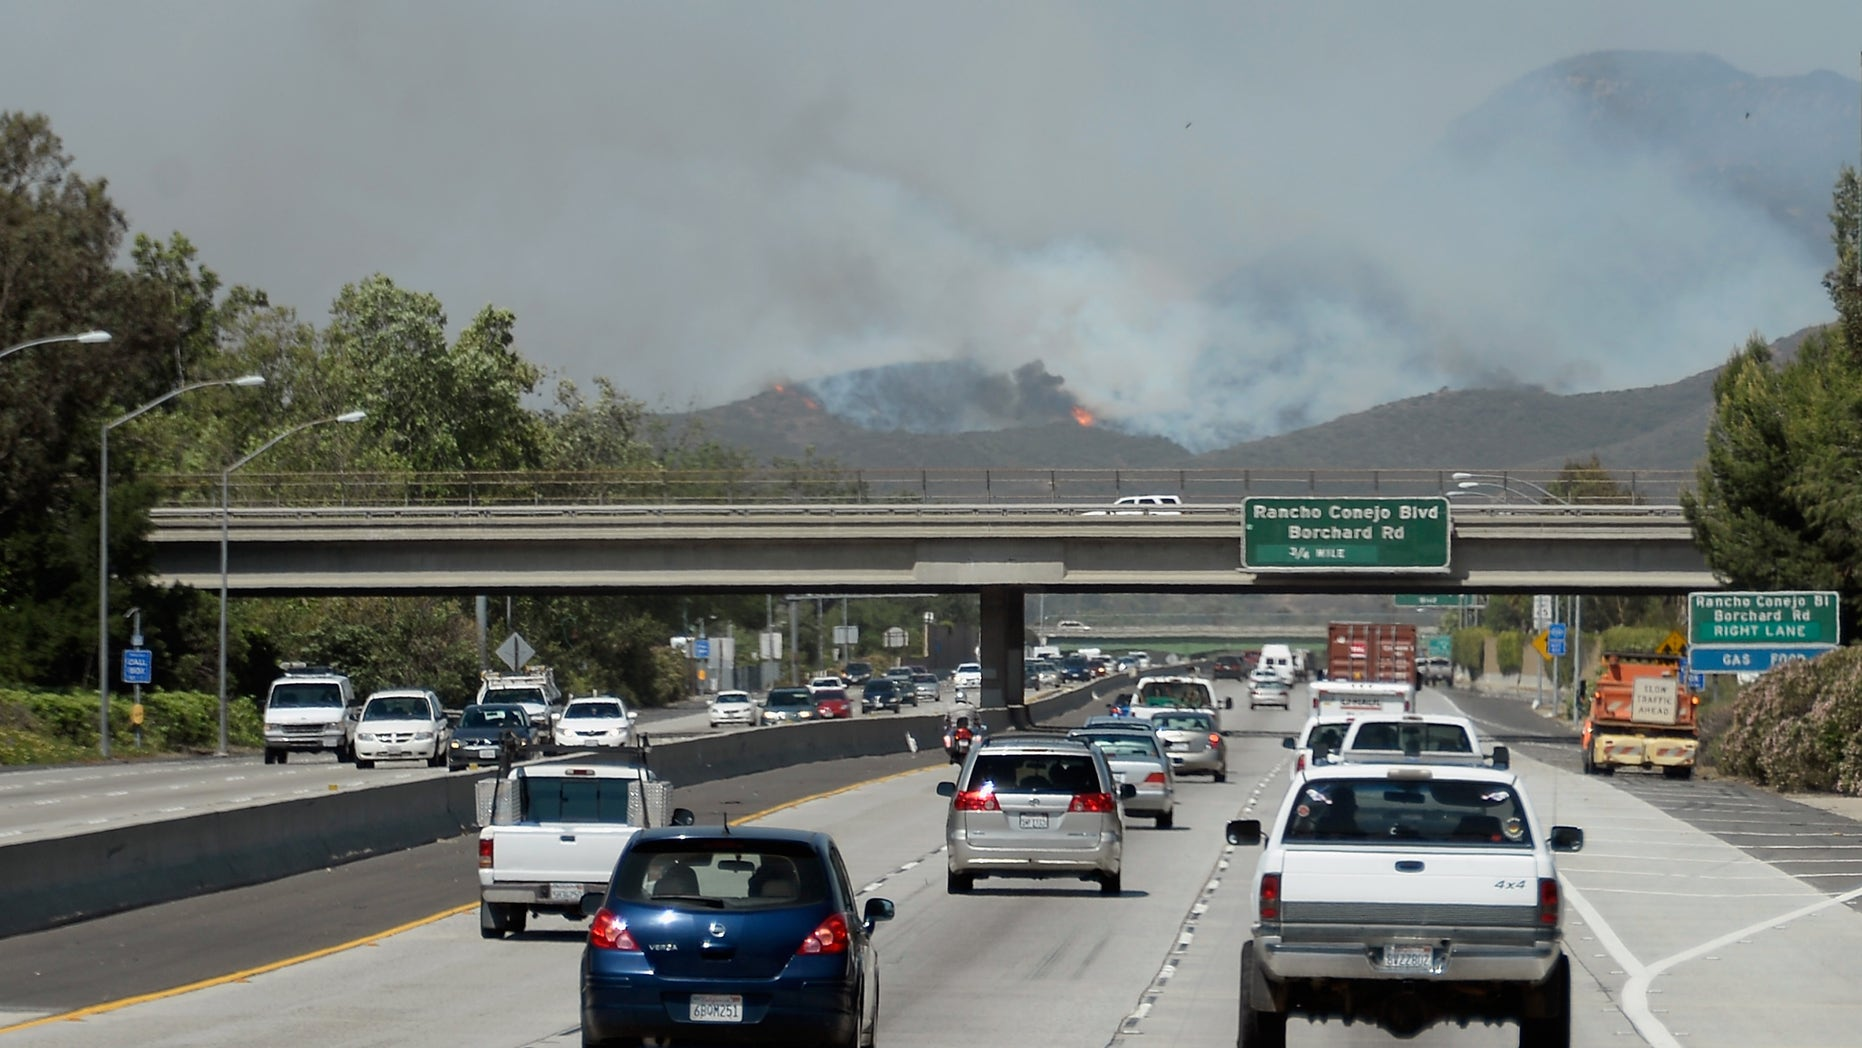 NEWBURY PARK, CA - MAY 02: Cars travel on the 101 Freeway as a wildfire burns in the hills nearby on May 2, 2013 in Newbury Park, California. Winds have made fighting the blaze, called the Springs Fire, more difficult and authorities have ordered some mandatory evacuations in the area. (Photo by Kevork Djansezian/Getty Images)